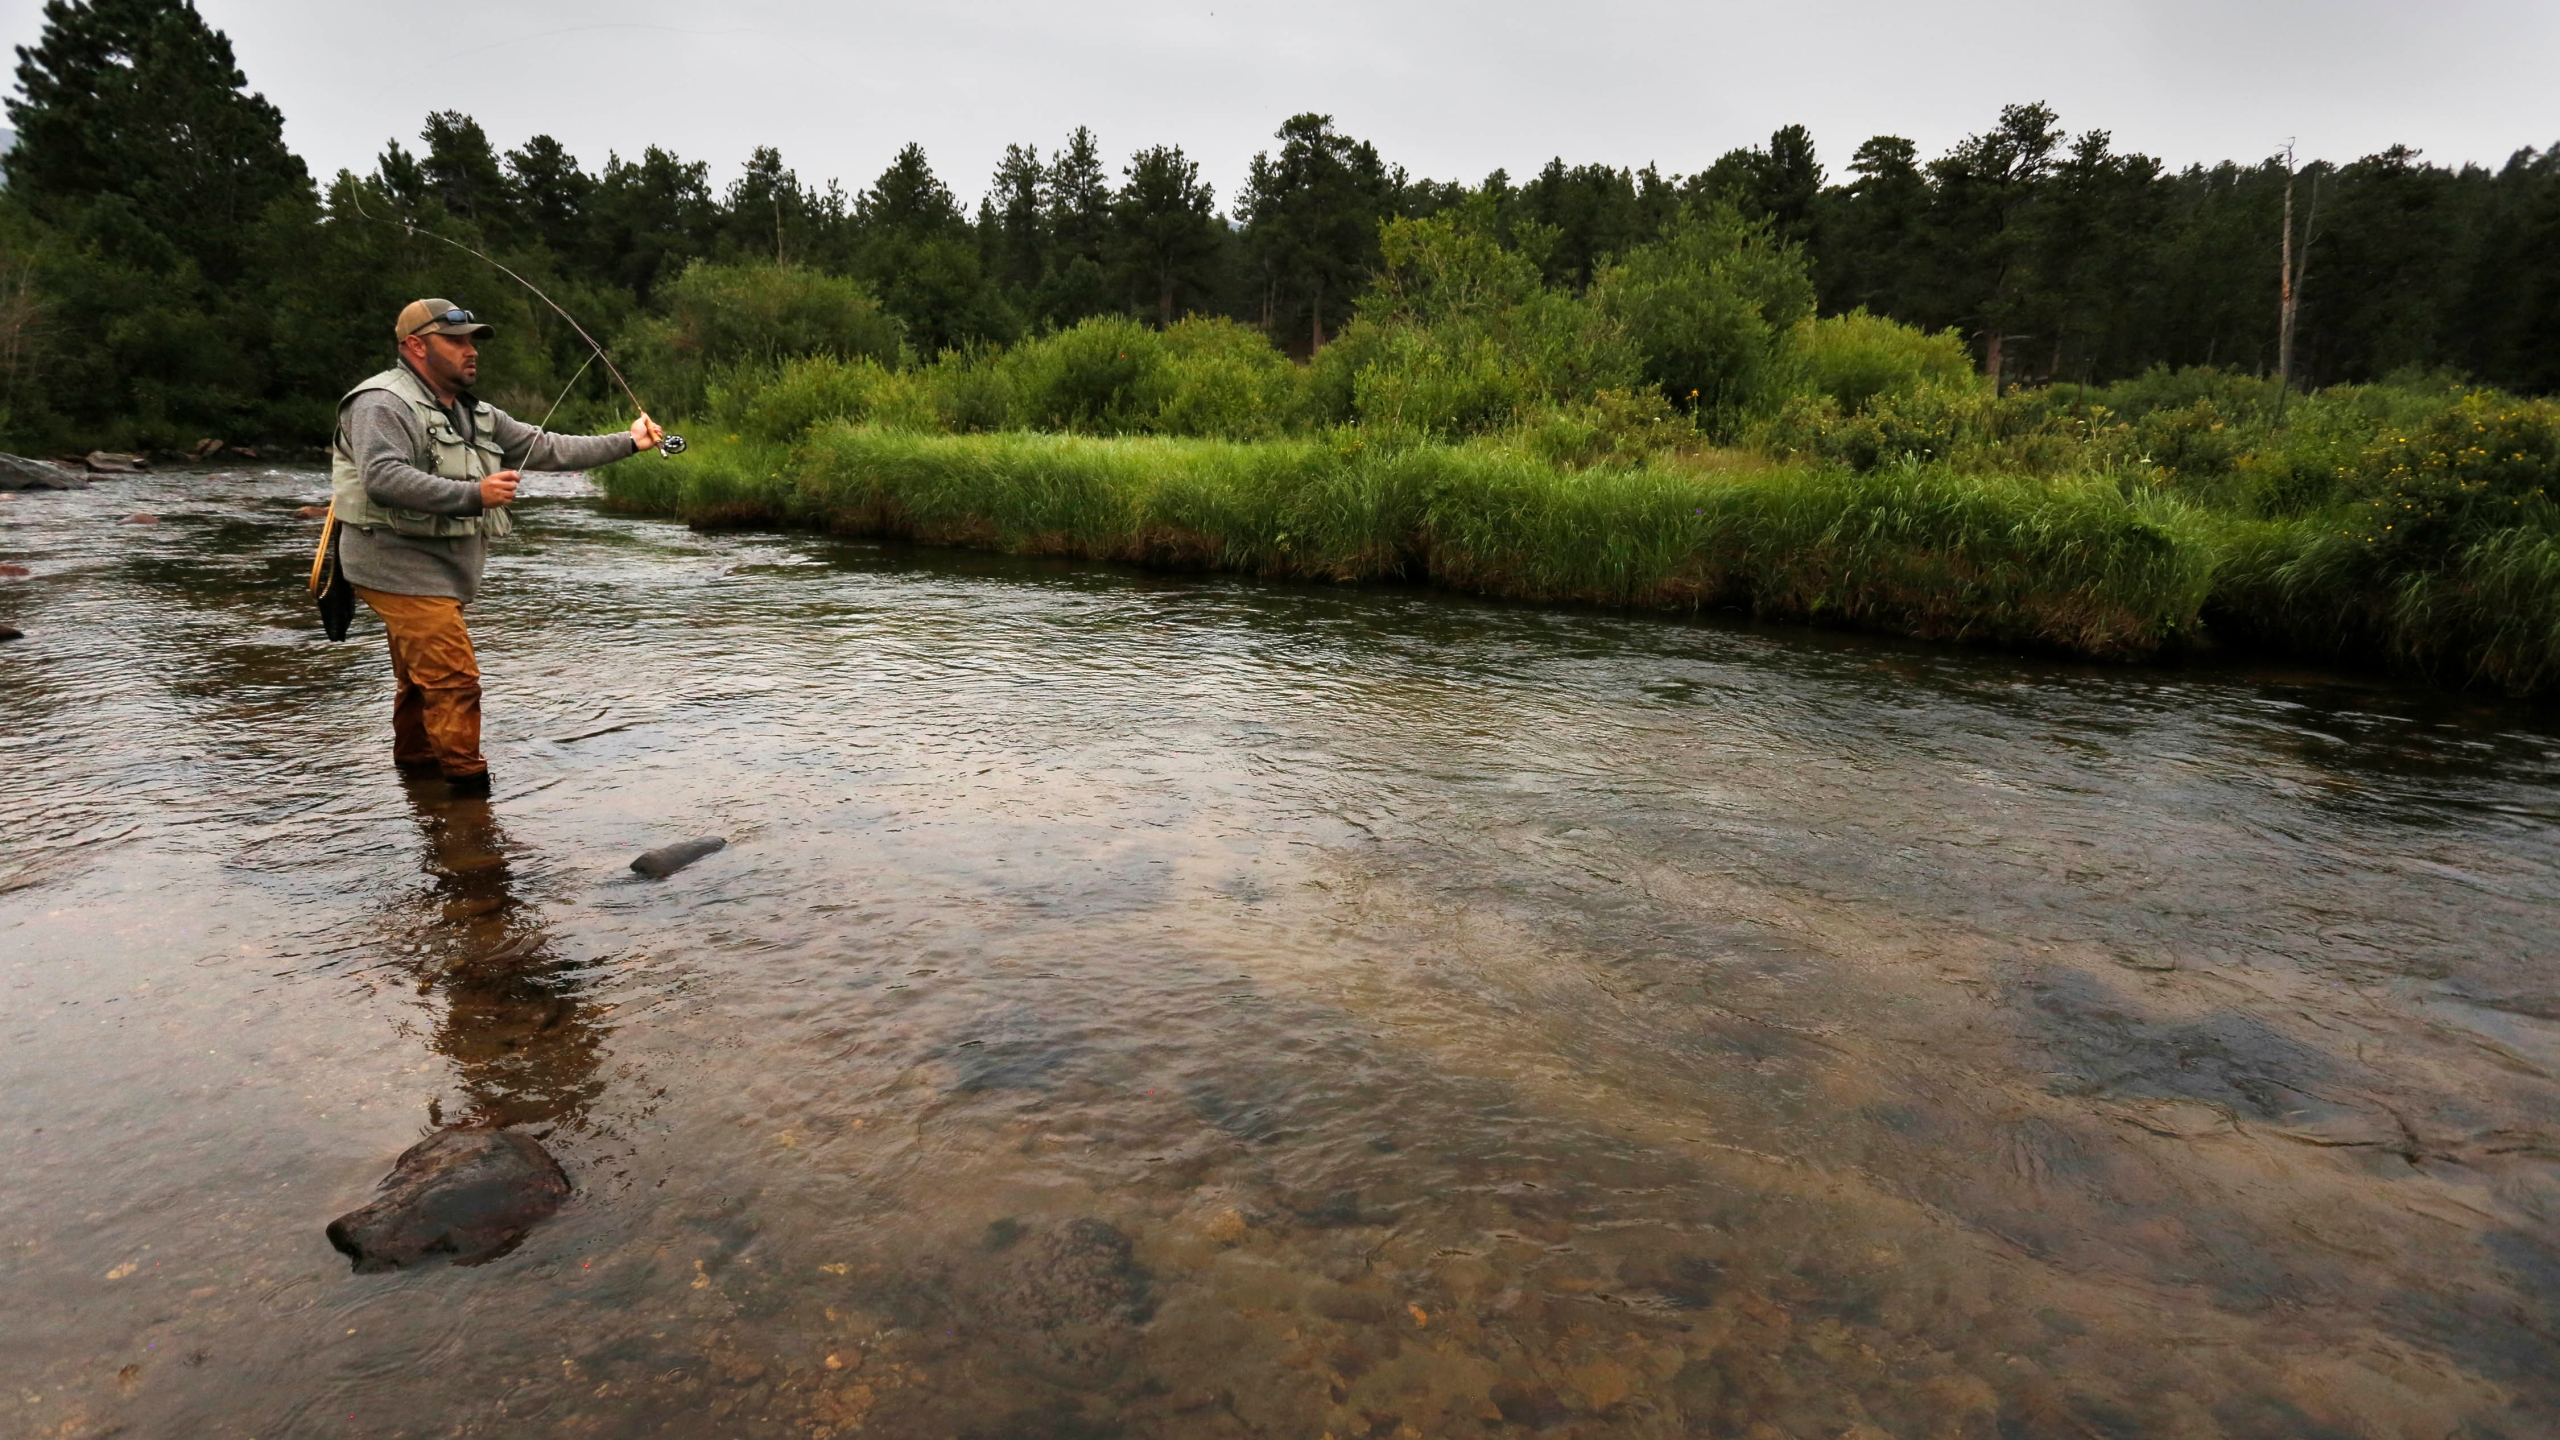 Angler Chris Atkins of Allendale, Mich., fly fishes on a pristine meandering stream inside Rocky Mountain National Park, near Estes Park, Colo., on Au